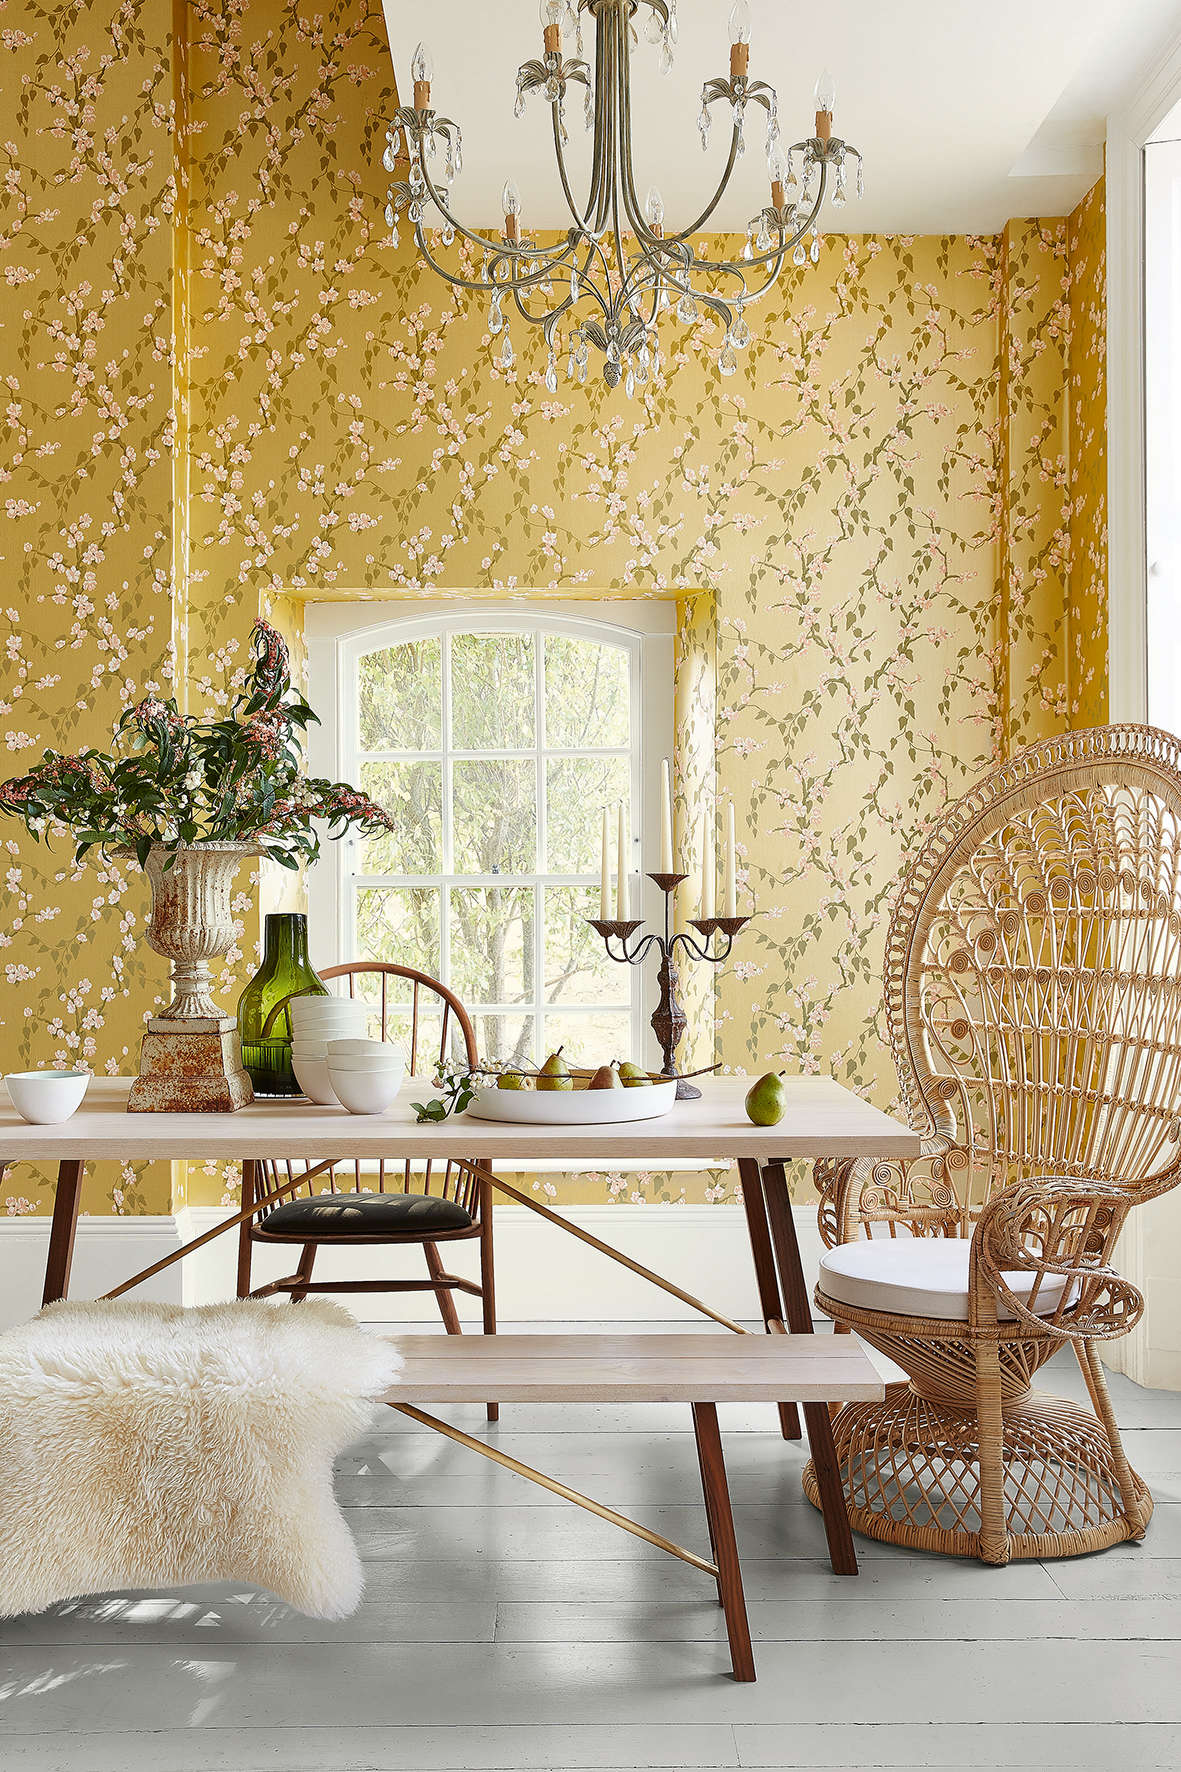 Papier peint Sakura - Yellow Lustre, de la collection Archive Trails chez Little Greene.